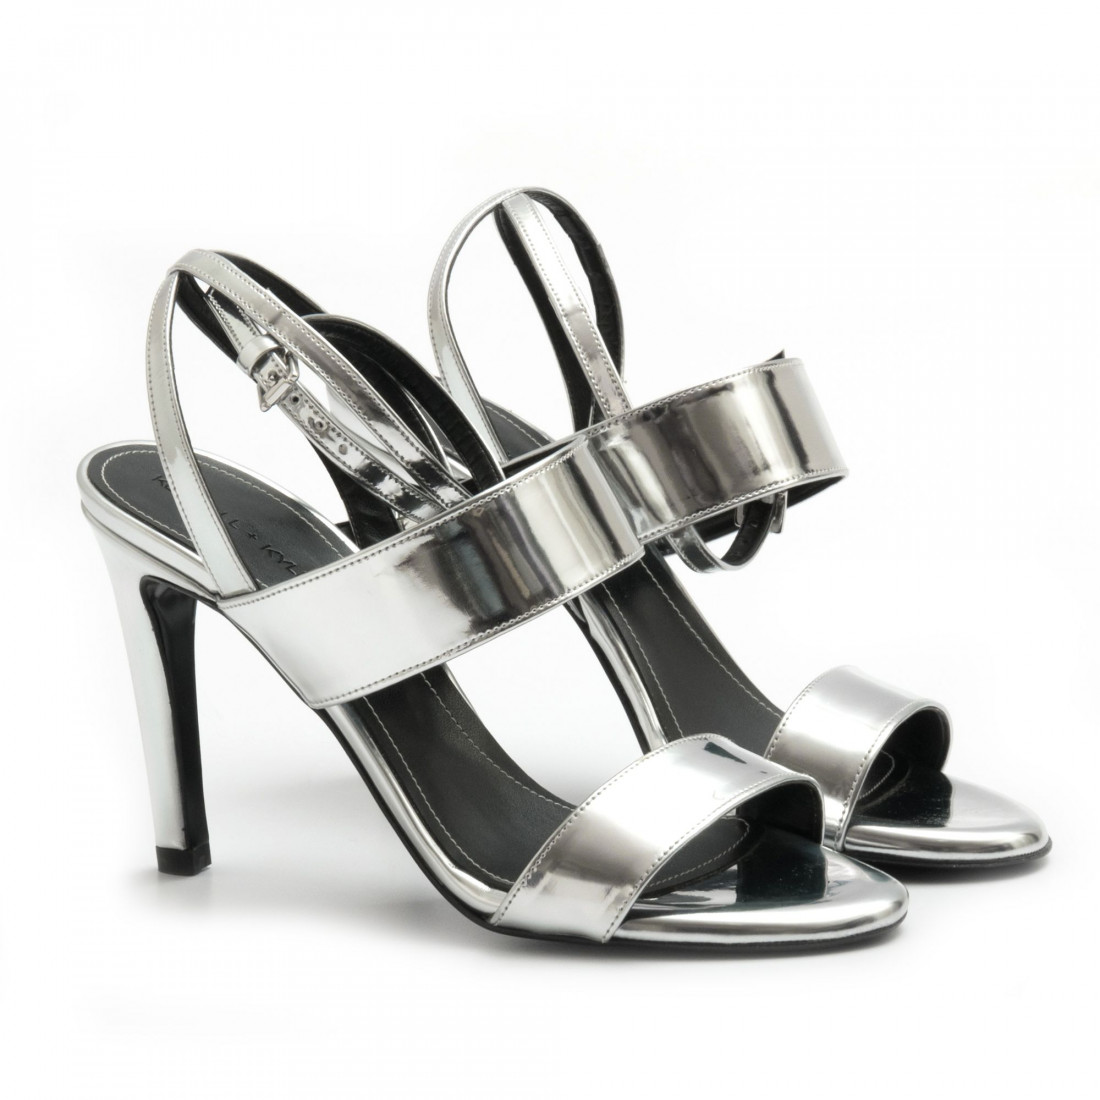 sandals woman kendall kylie mikella silver 4747